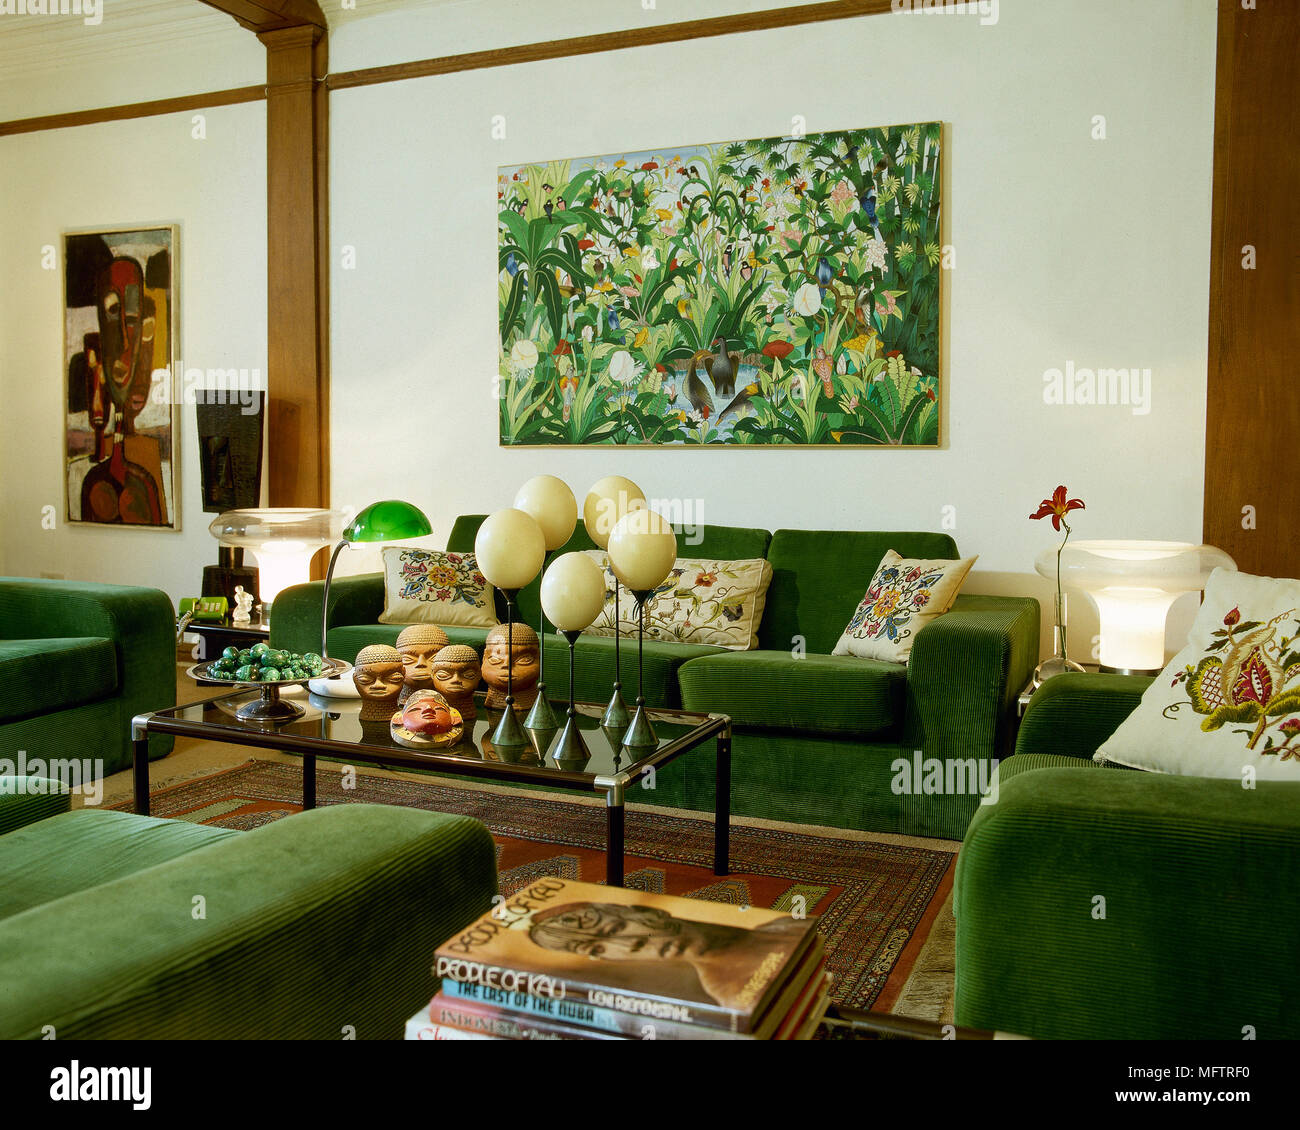 Sitting Room With Green Sofas And Glass Coffee Table Stock Photo